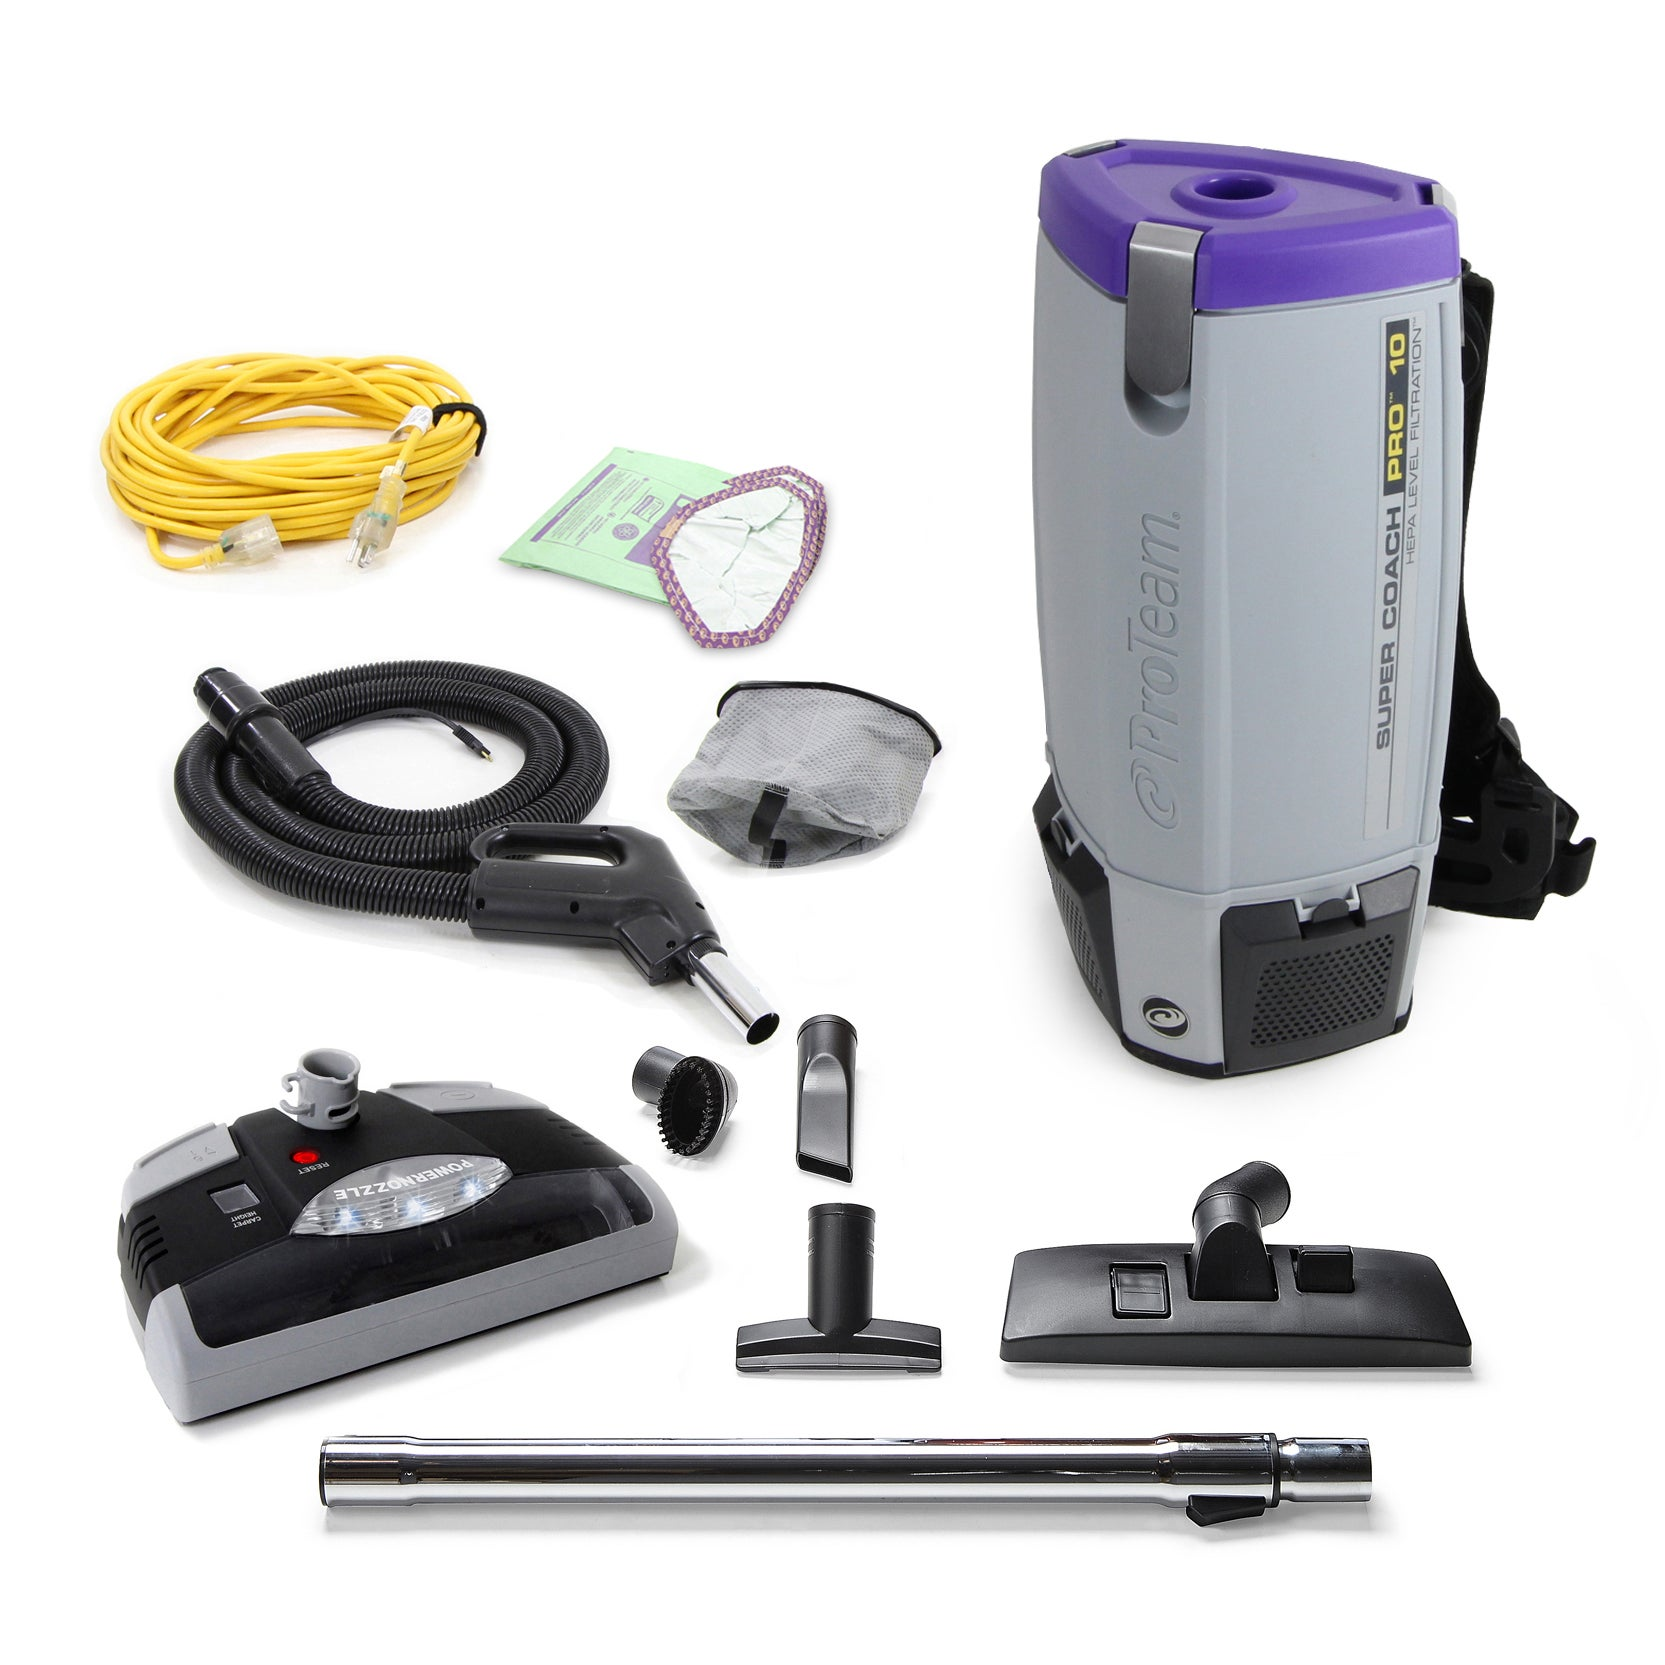 ProTeam Super Coach Pro 10 QT Vacuum Cleaner with Power H...